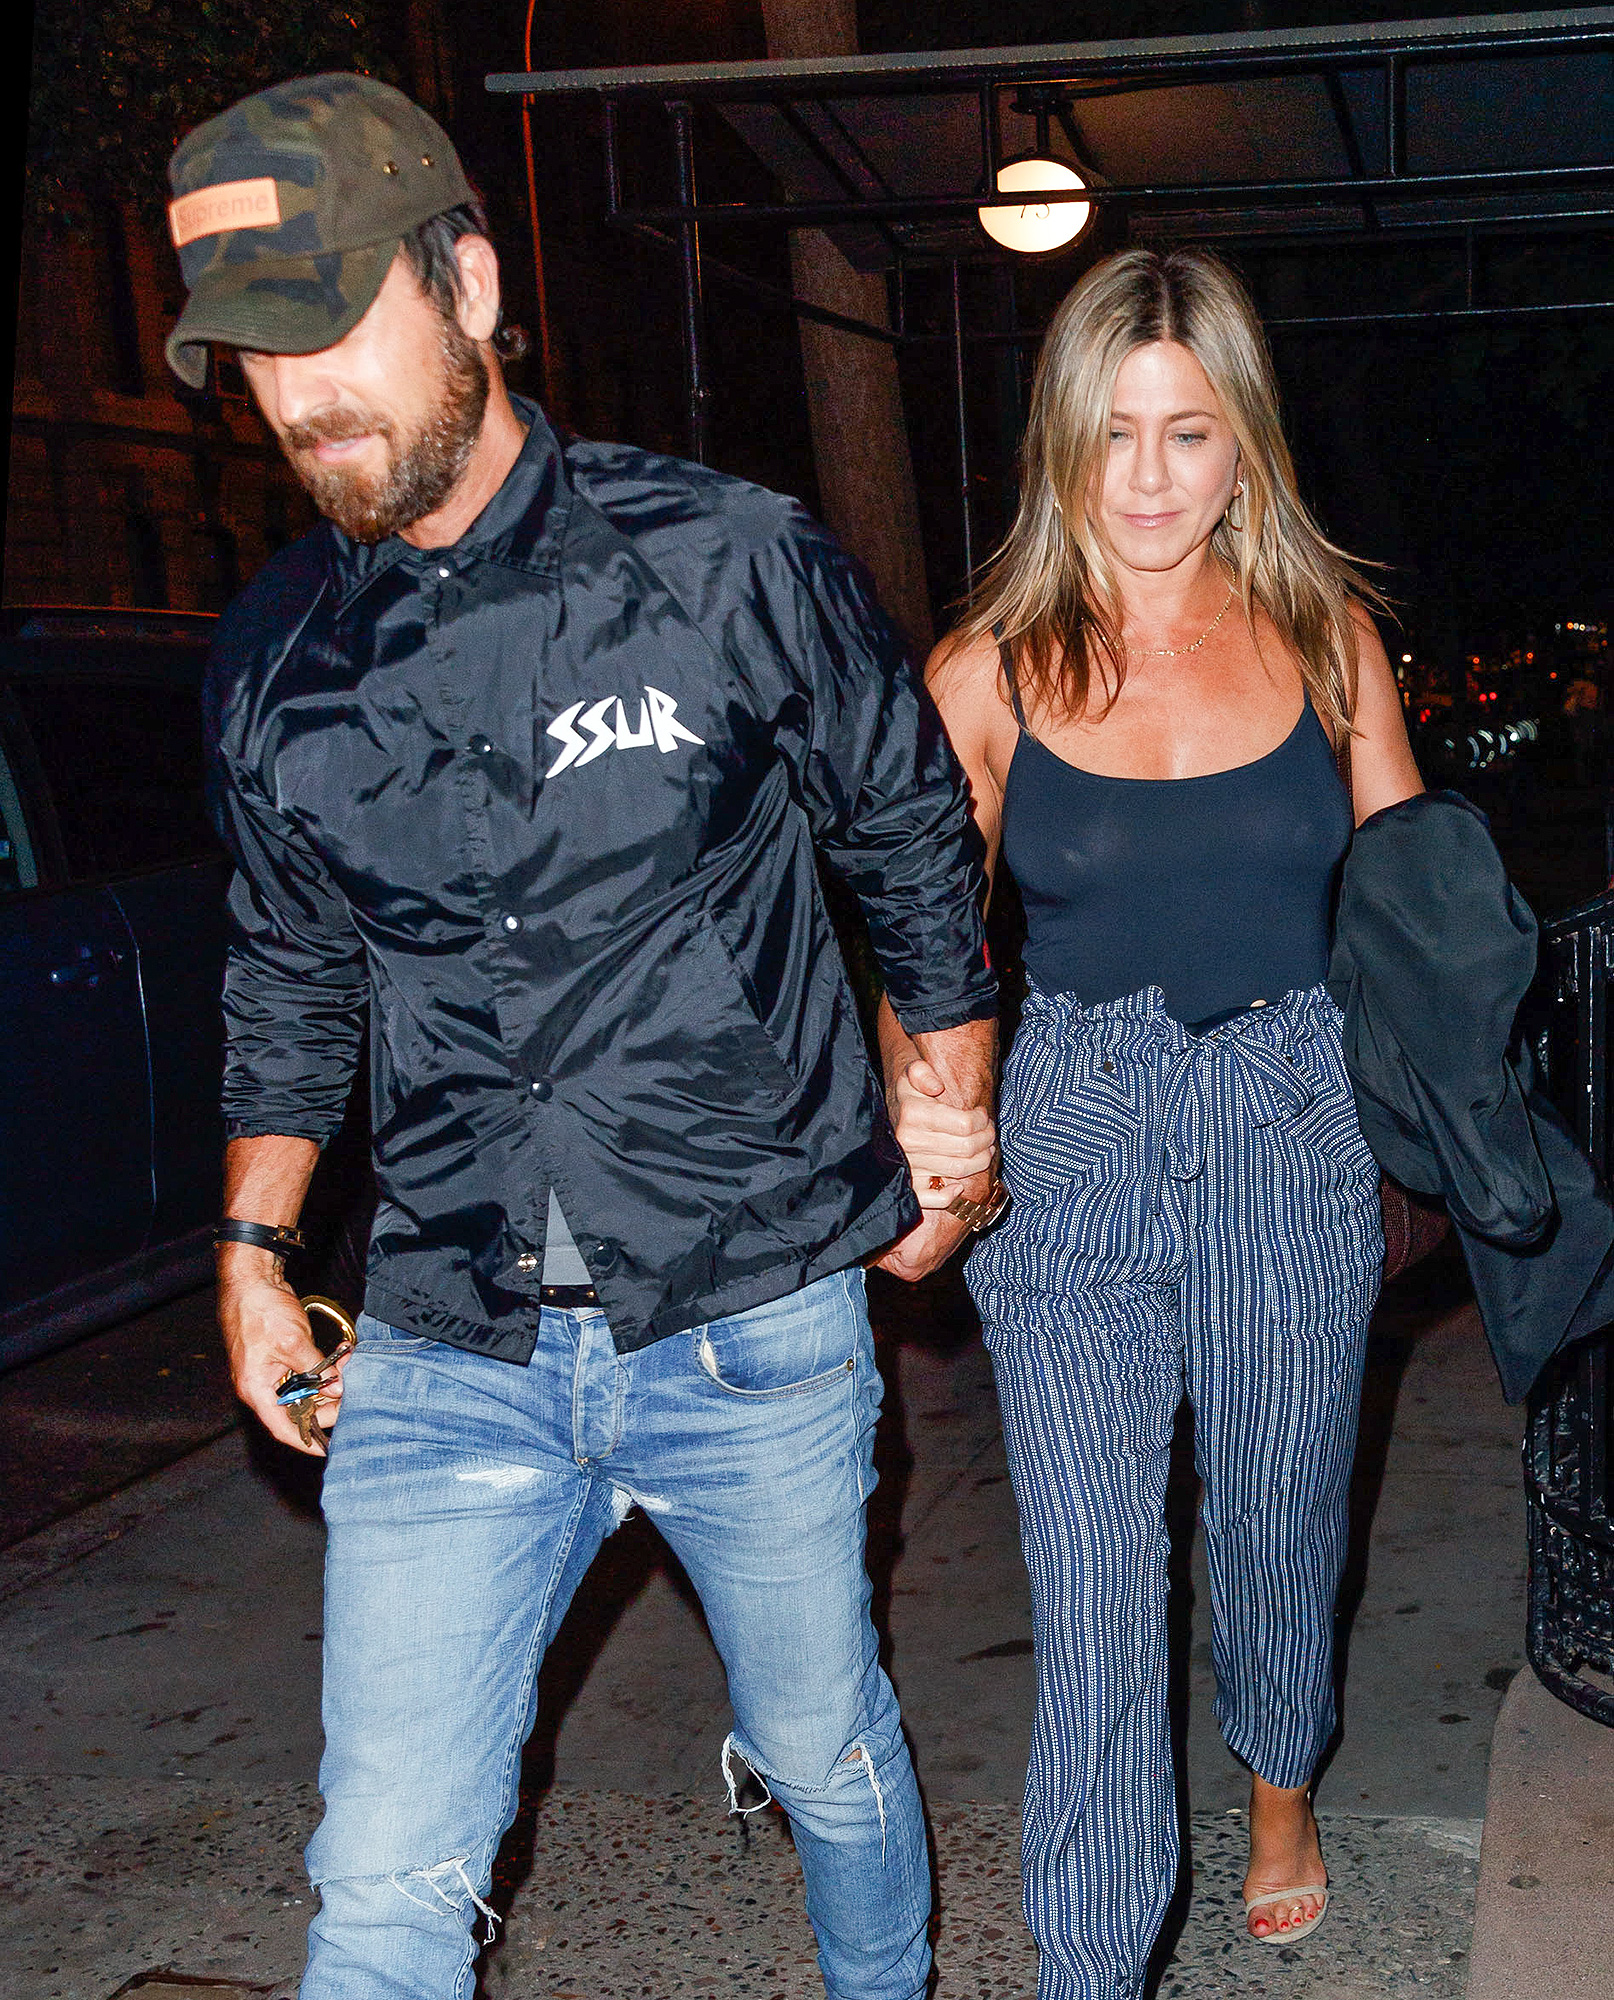 EXCLUSIVE: Jennifer Aniston and Justin Theroux go to dinner at Blue Hill in New York